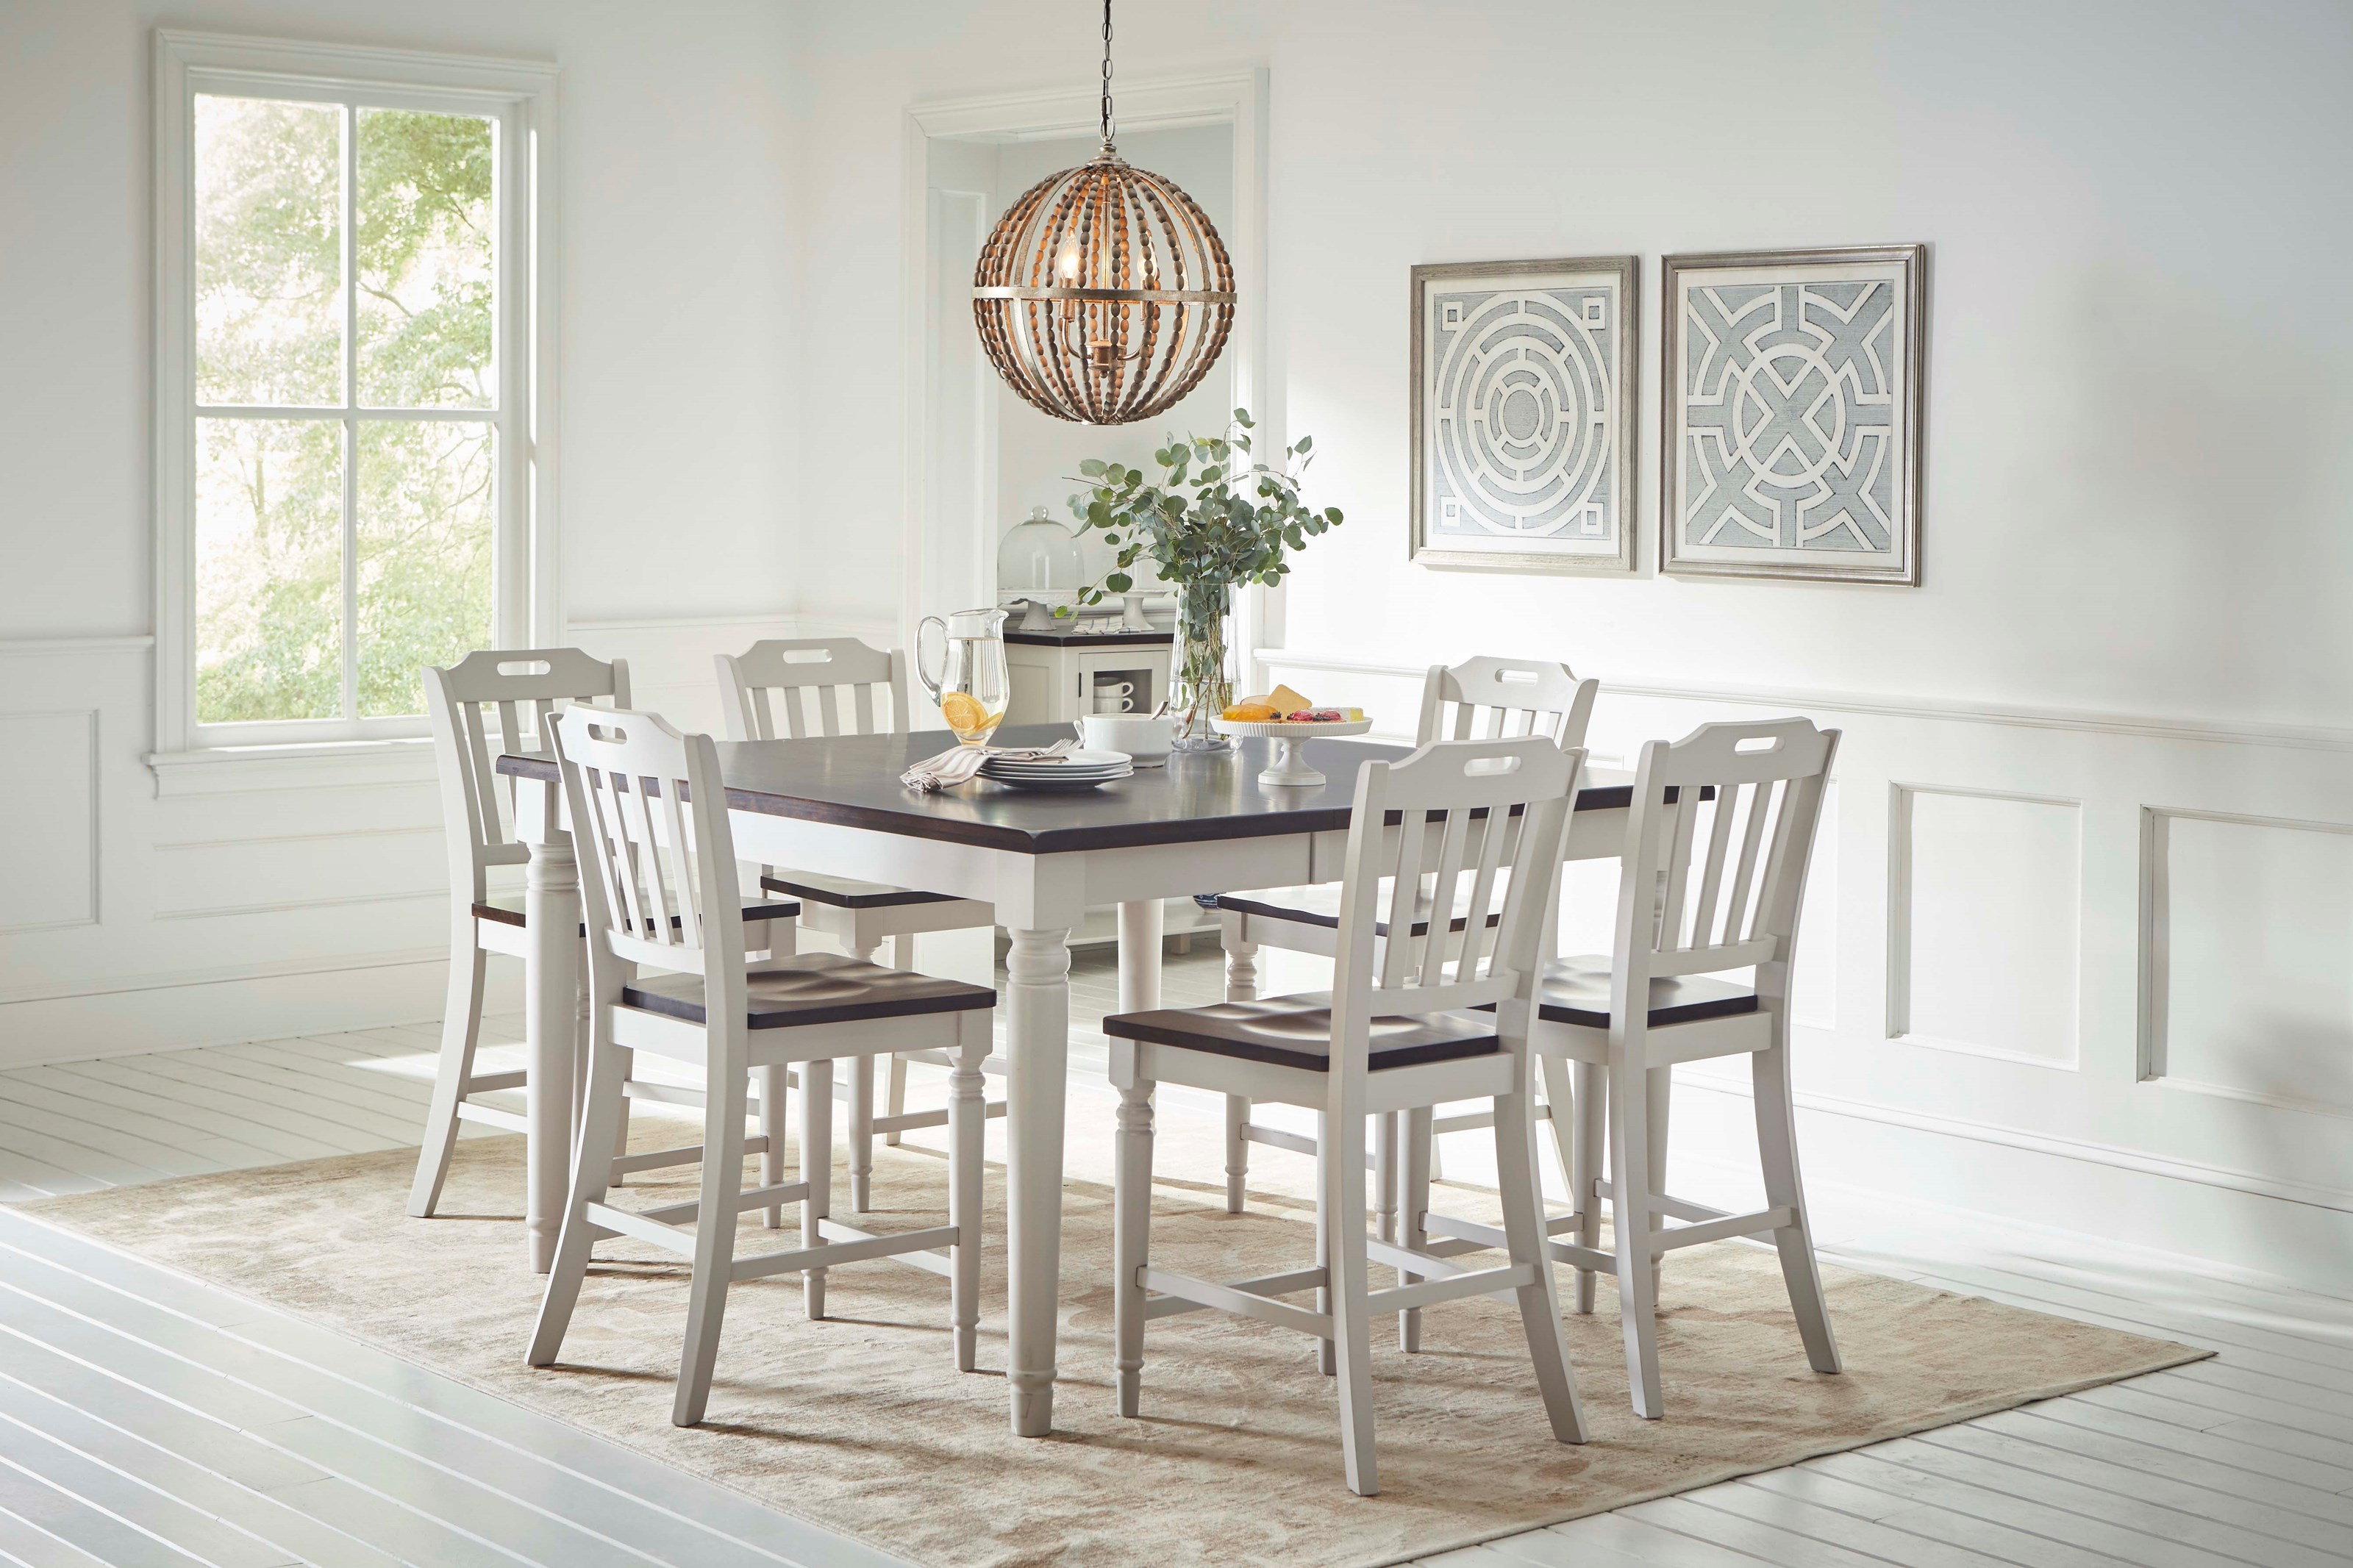 Orchard Park Counter Height Dining Table With 8 Chairs By Jofran